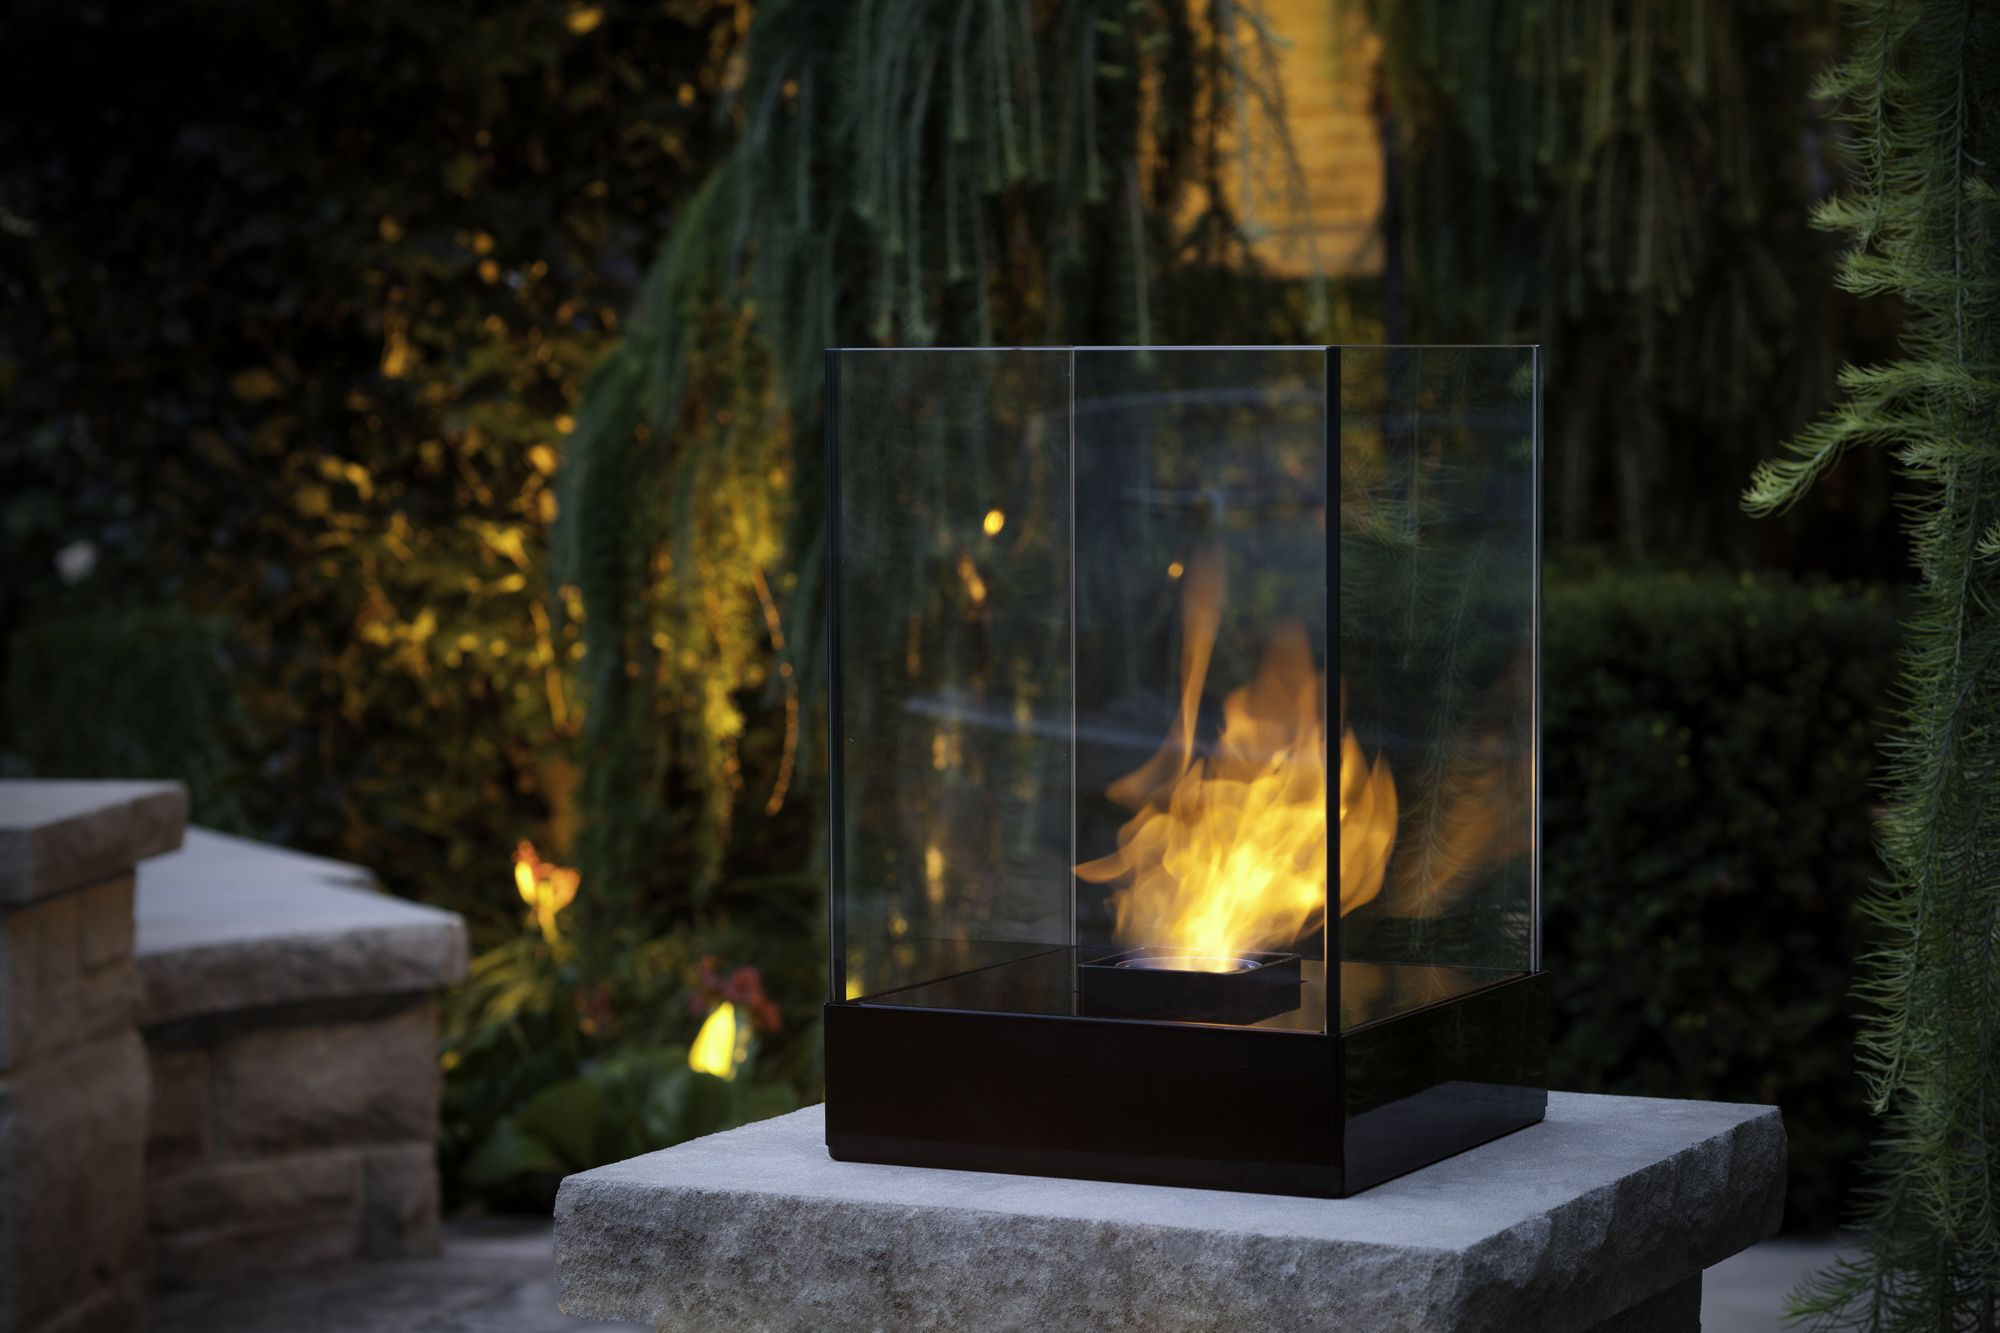 0df004f9ad2177b0a12a85df0fbe88b7 Top Result 50 Awesome Steel Outdoor Fireplace Gallery 2018 Hiw6